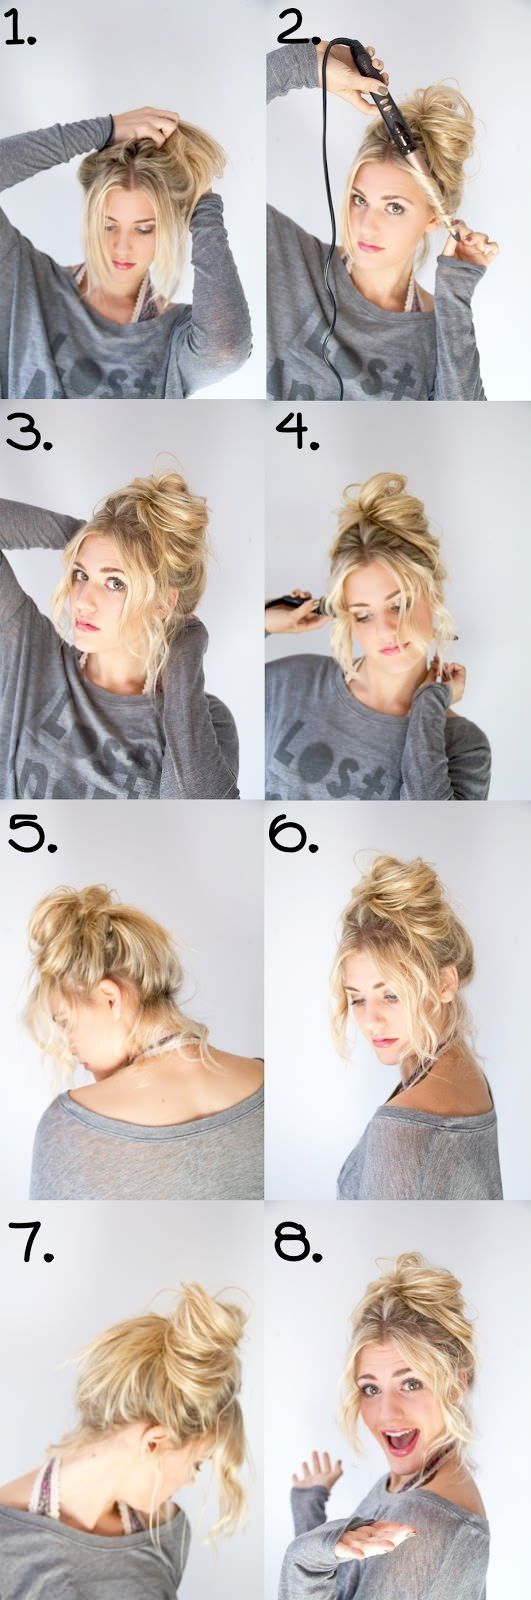 Simple! Cute messy hairstyle #CuteMessyHairstyles